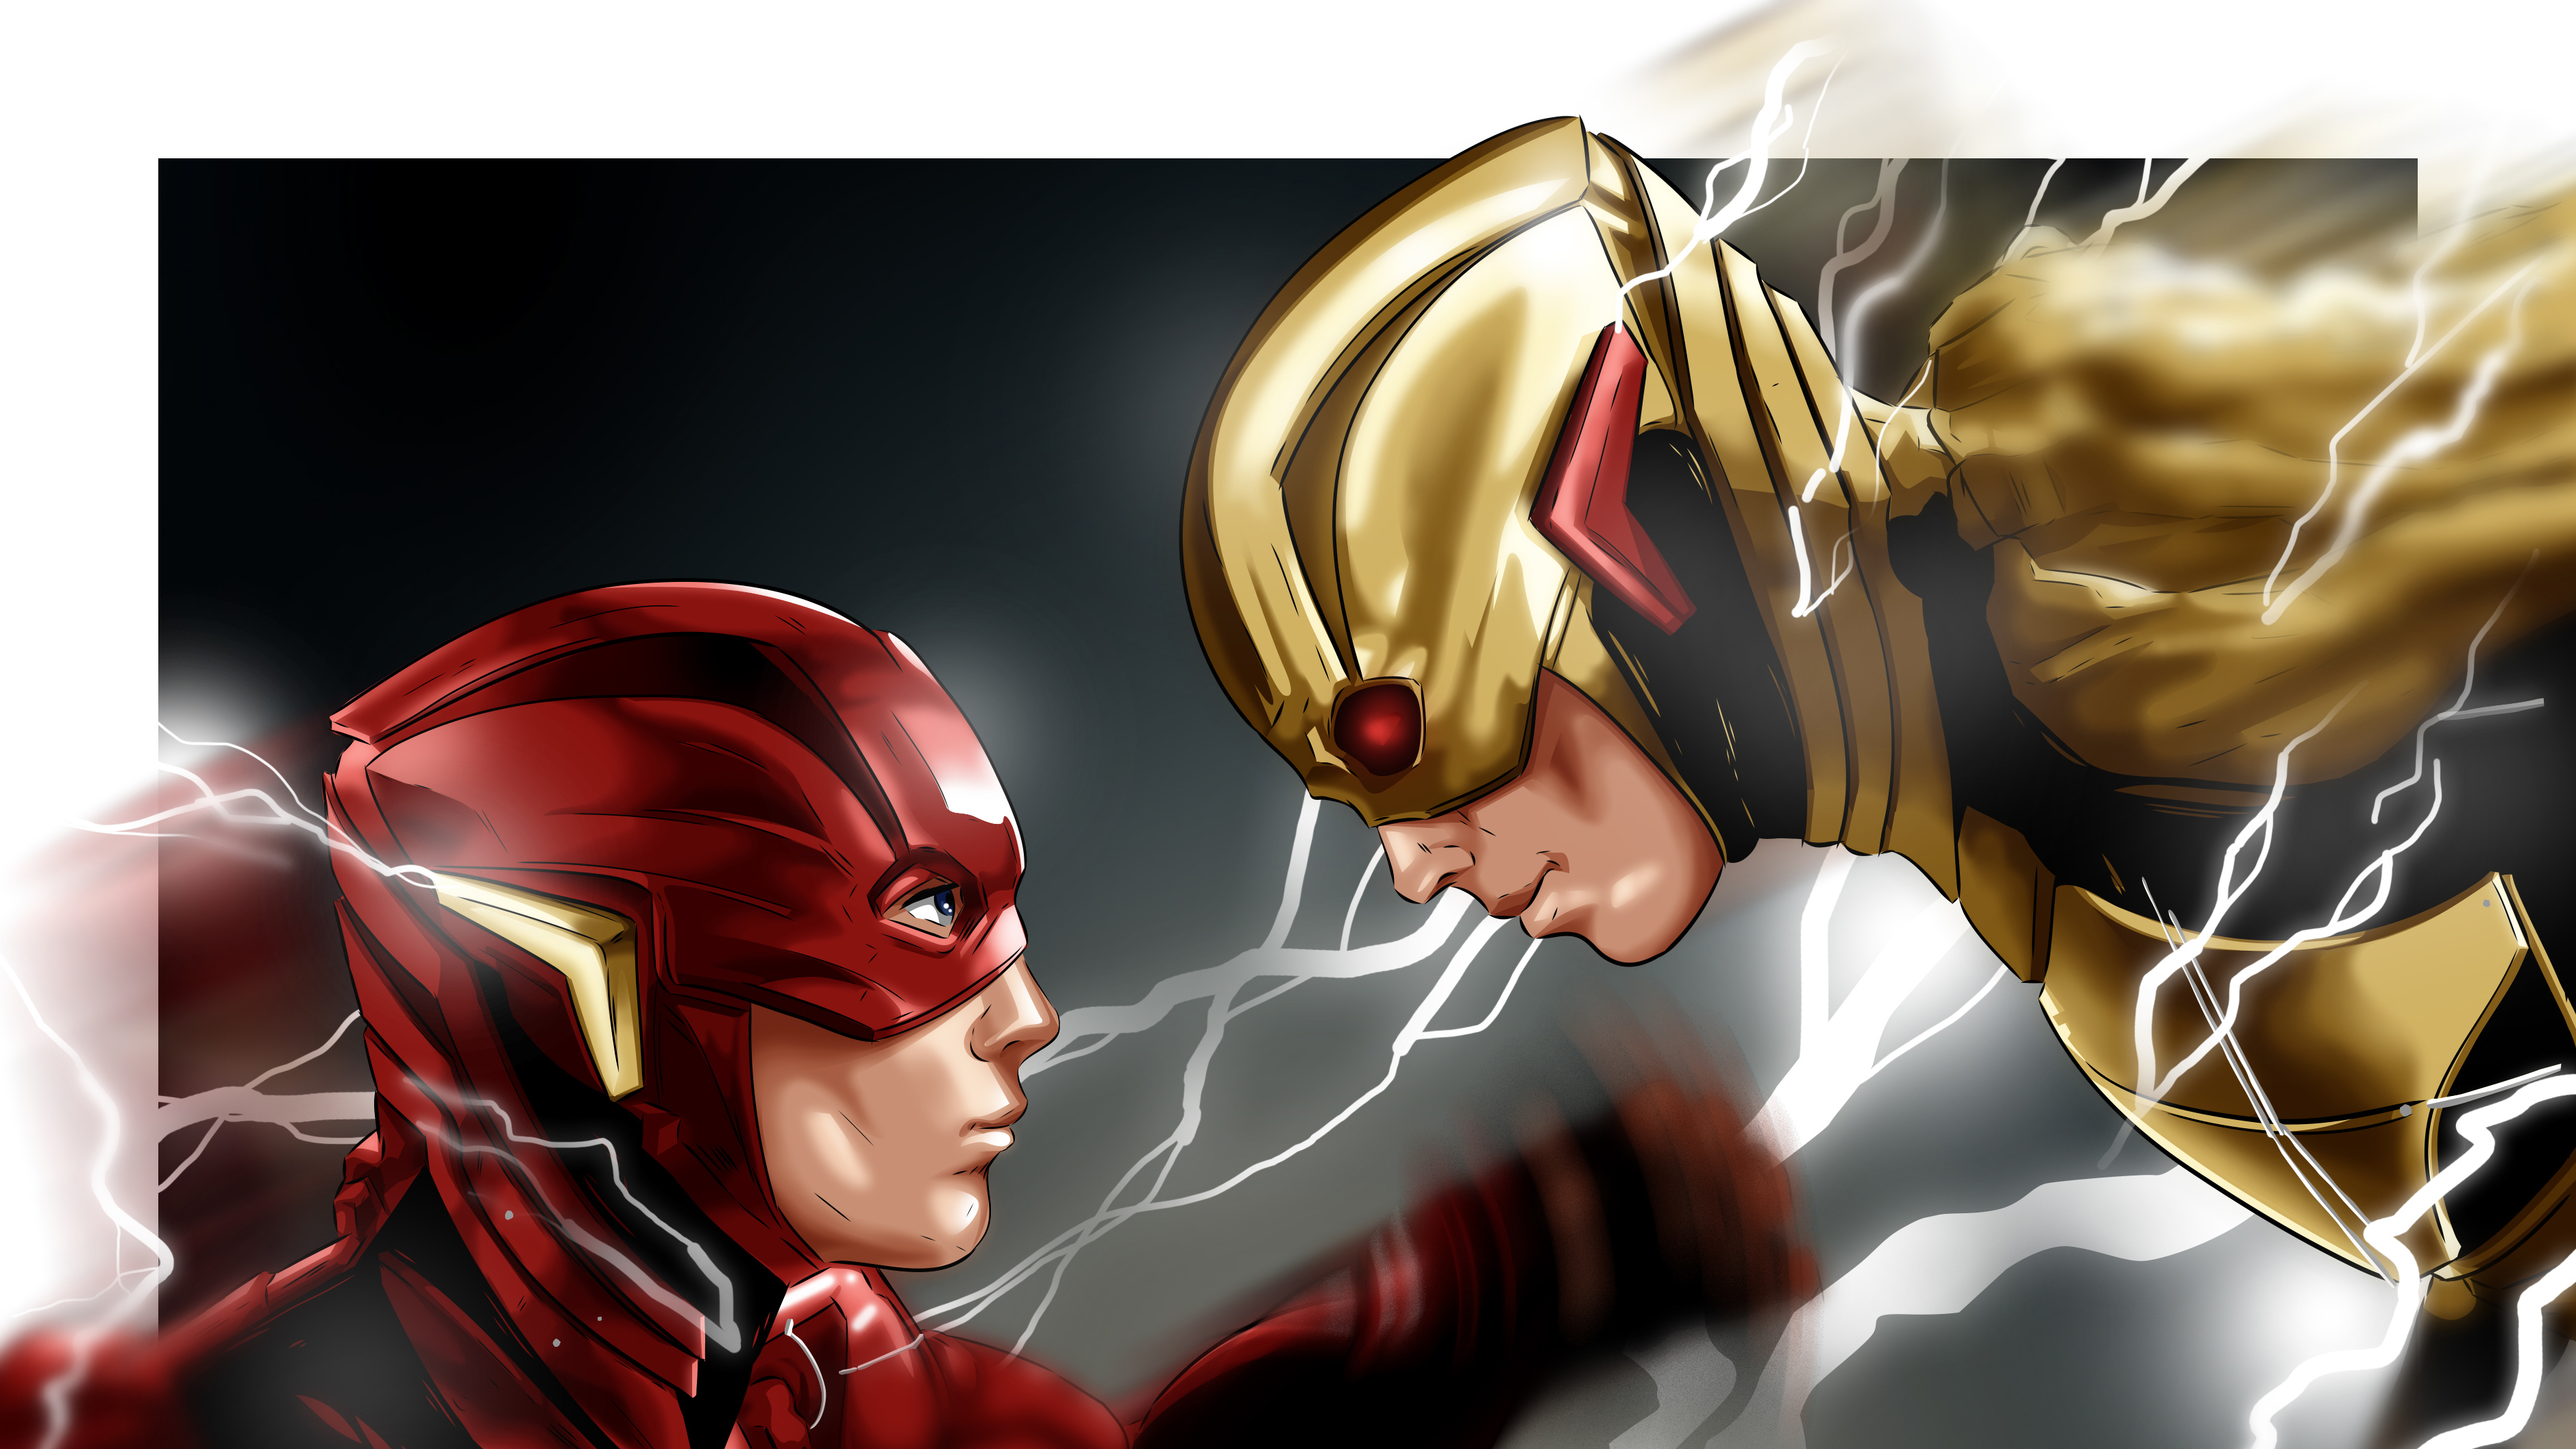 Flash Vs Reverse Flash 4k Desktop Wallpaper Reverse Flash